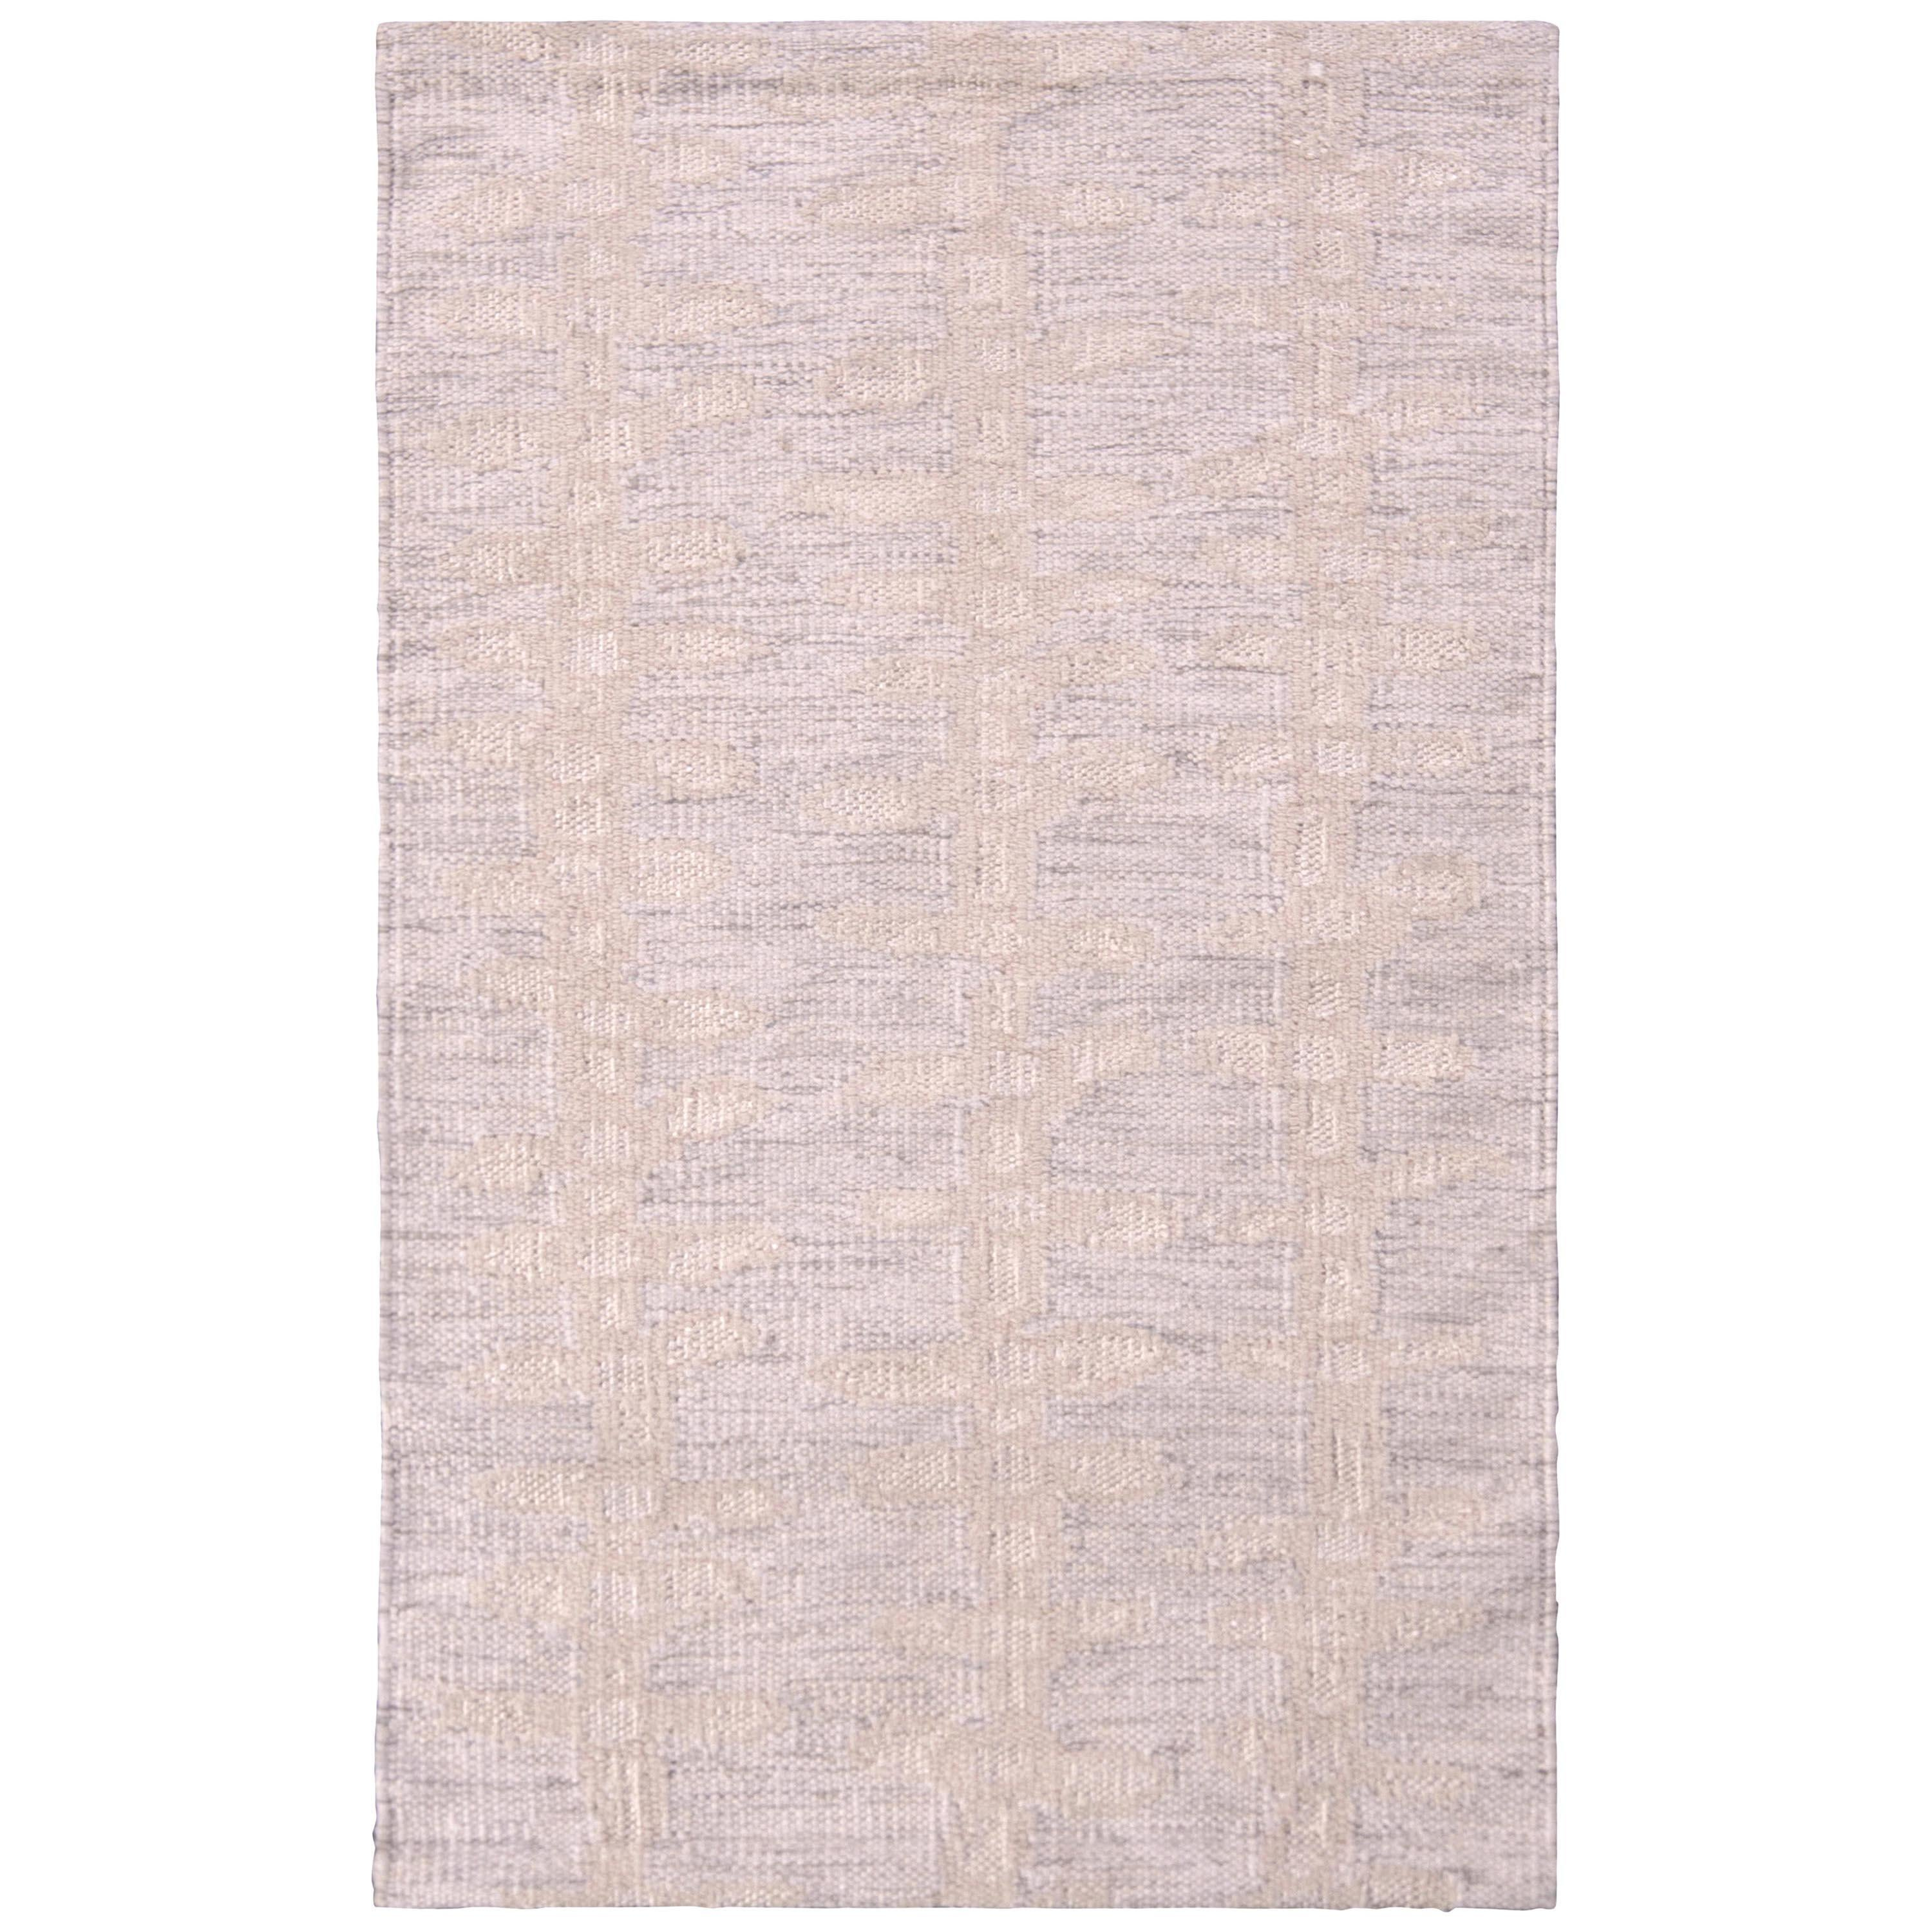 Rug & Kilim's Scandinavian Style Rug Geometric Beige and Silver Gray Pattern